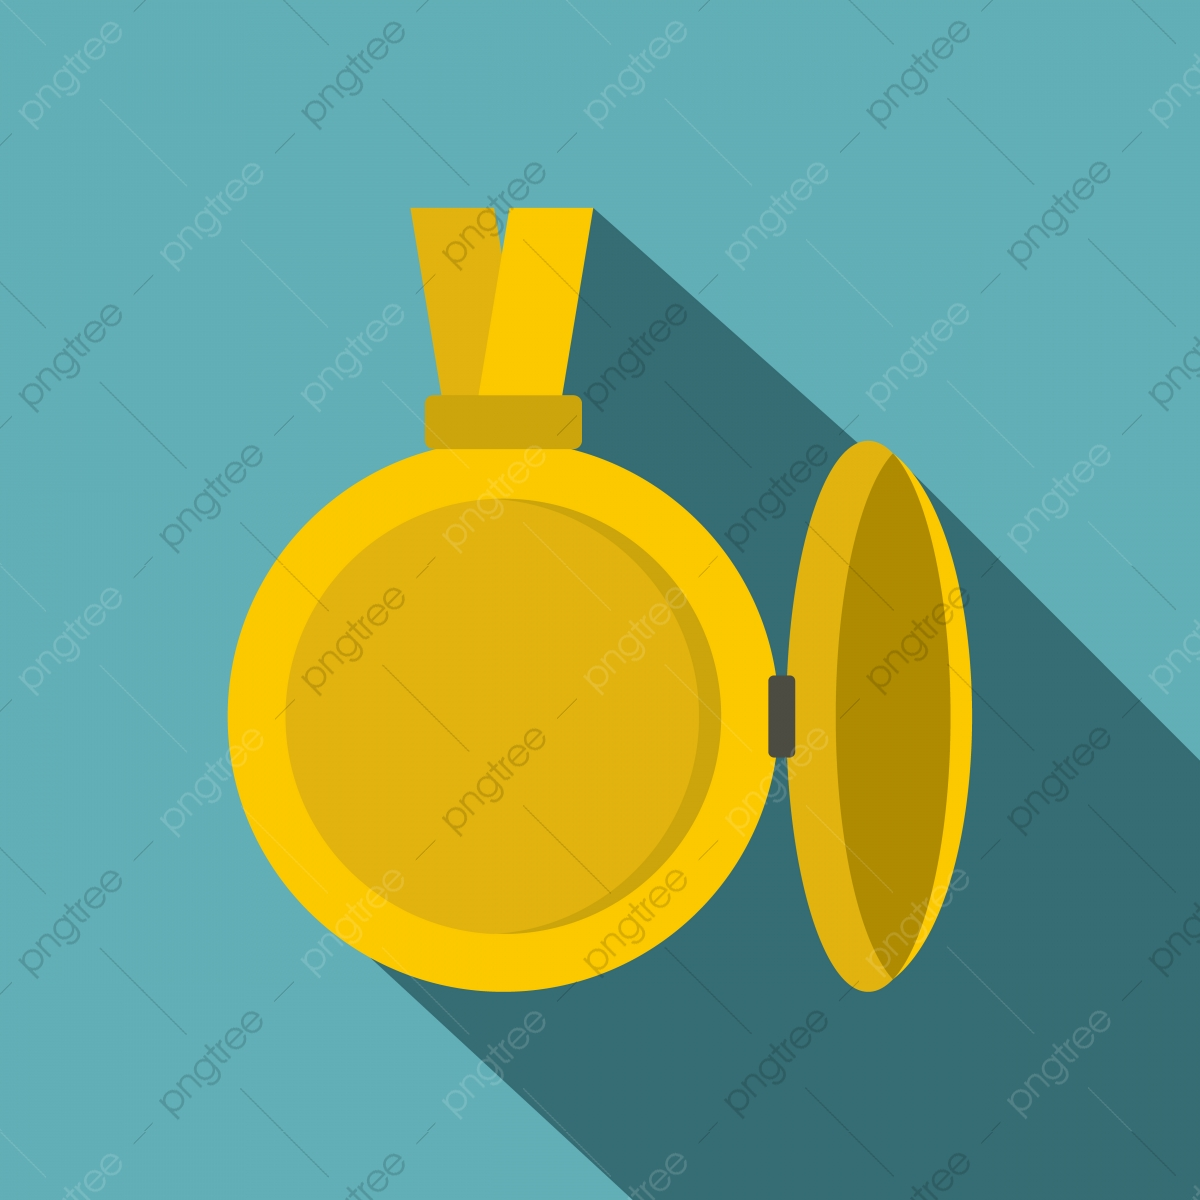 Medallion Png Images Vector And Psd Files Free Download On Pngtree